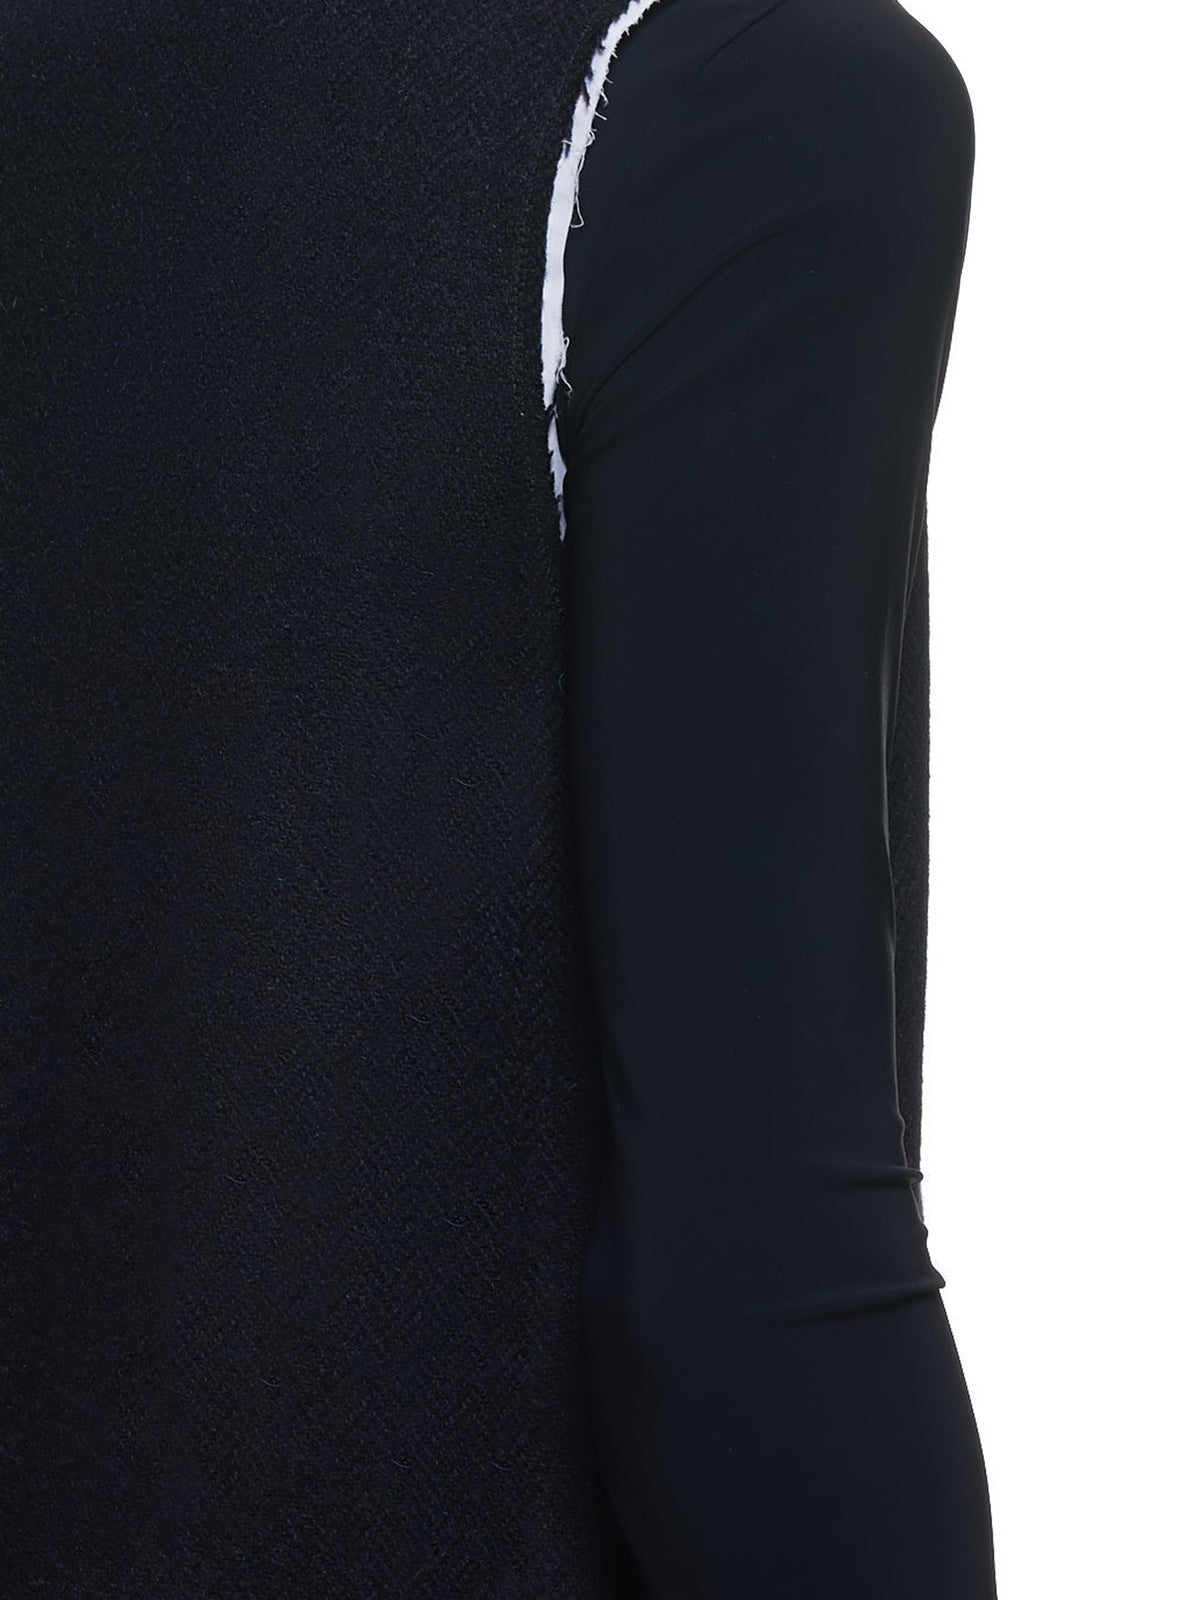 Sleeveless Turtleneck Top (202-400-20005-DARK-NAVY)